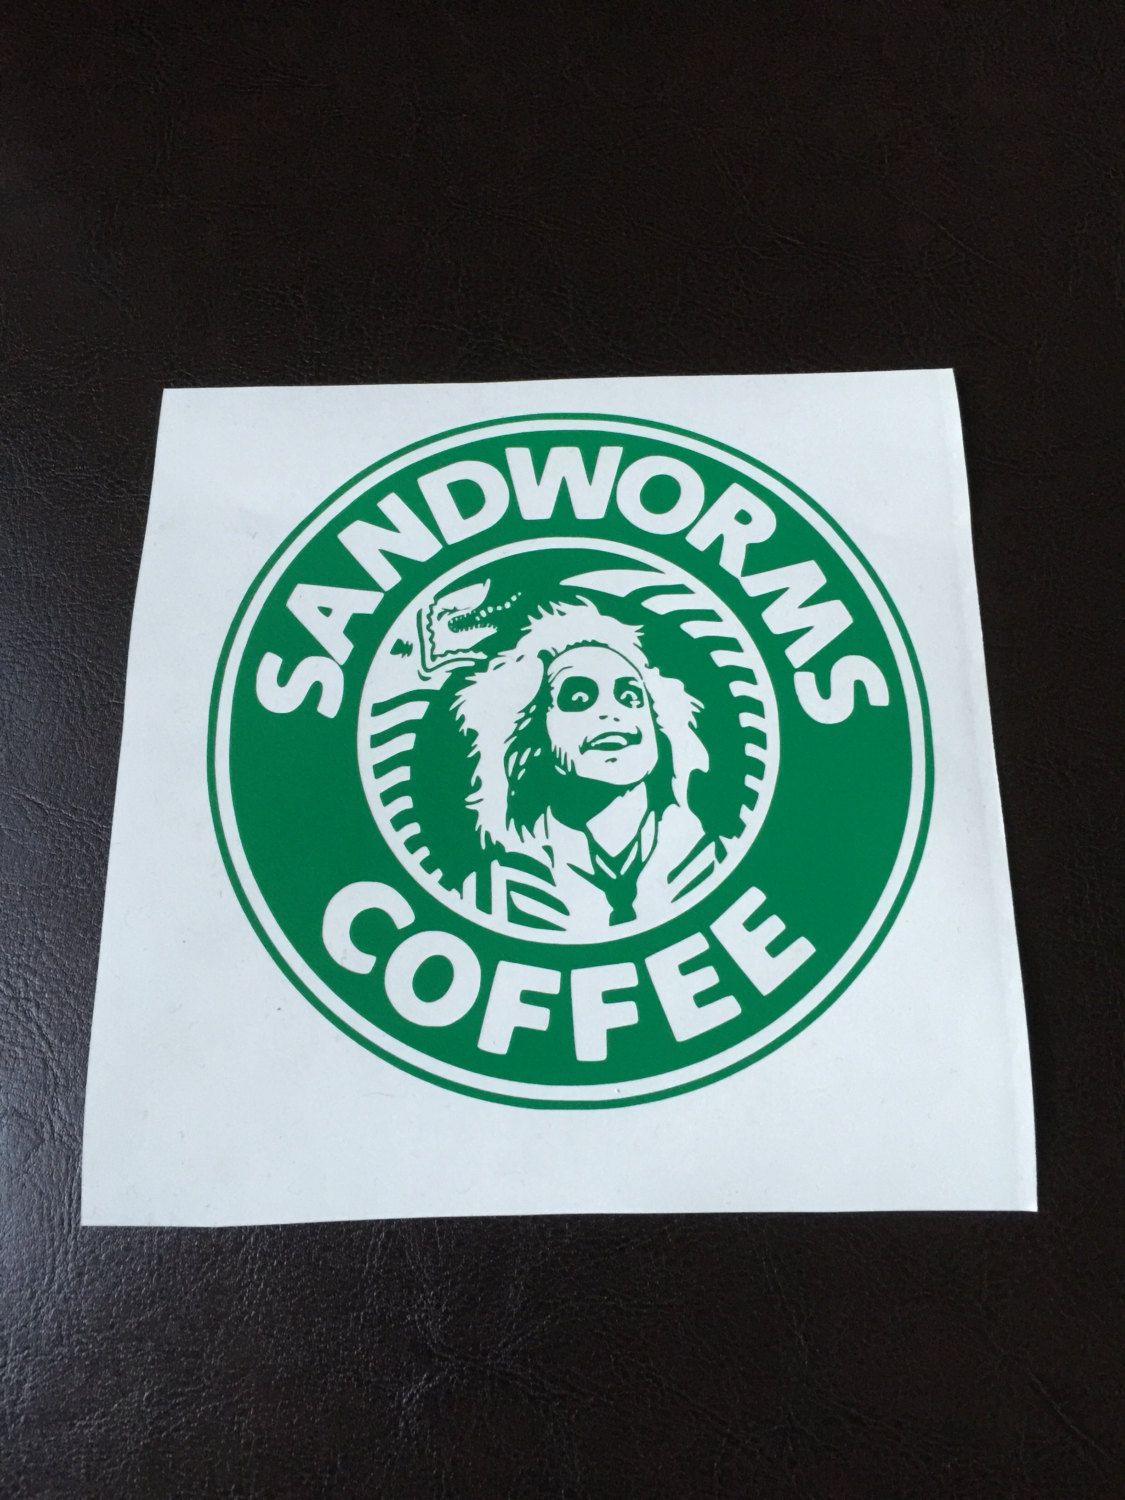 Sandworms Coffee Decal Starbucks Beetlejuice Coffee Decal Beetlejuice Vinyl Decals